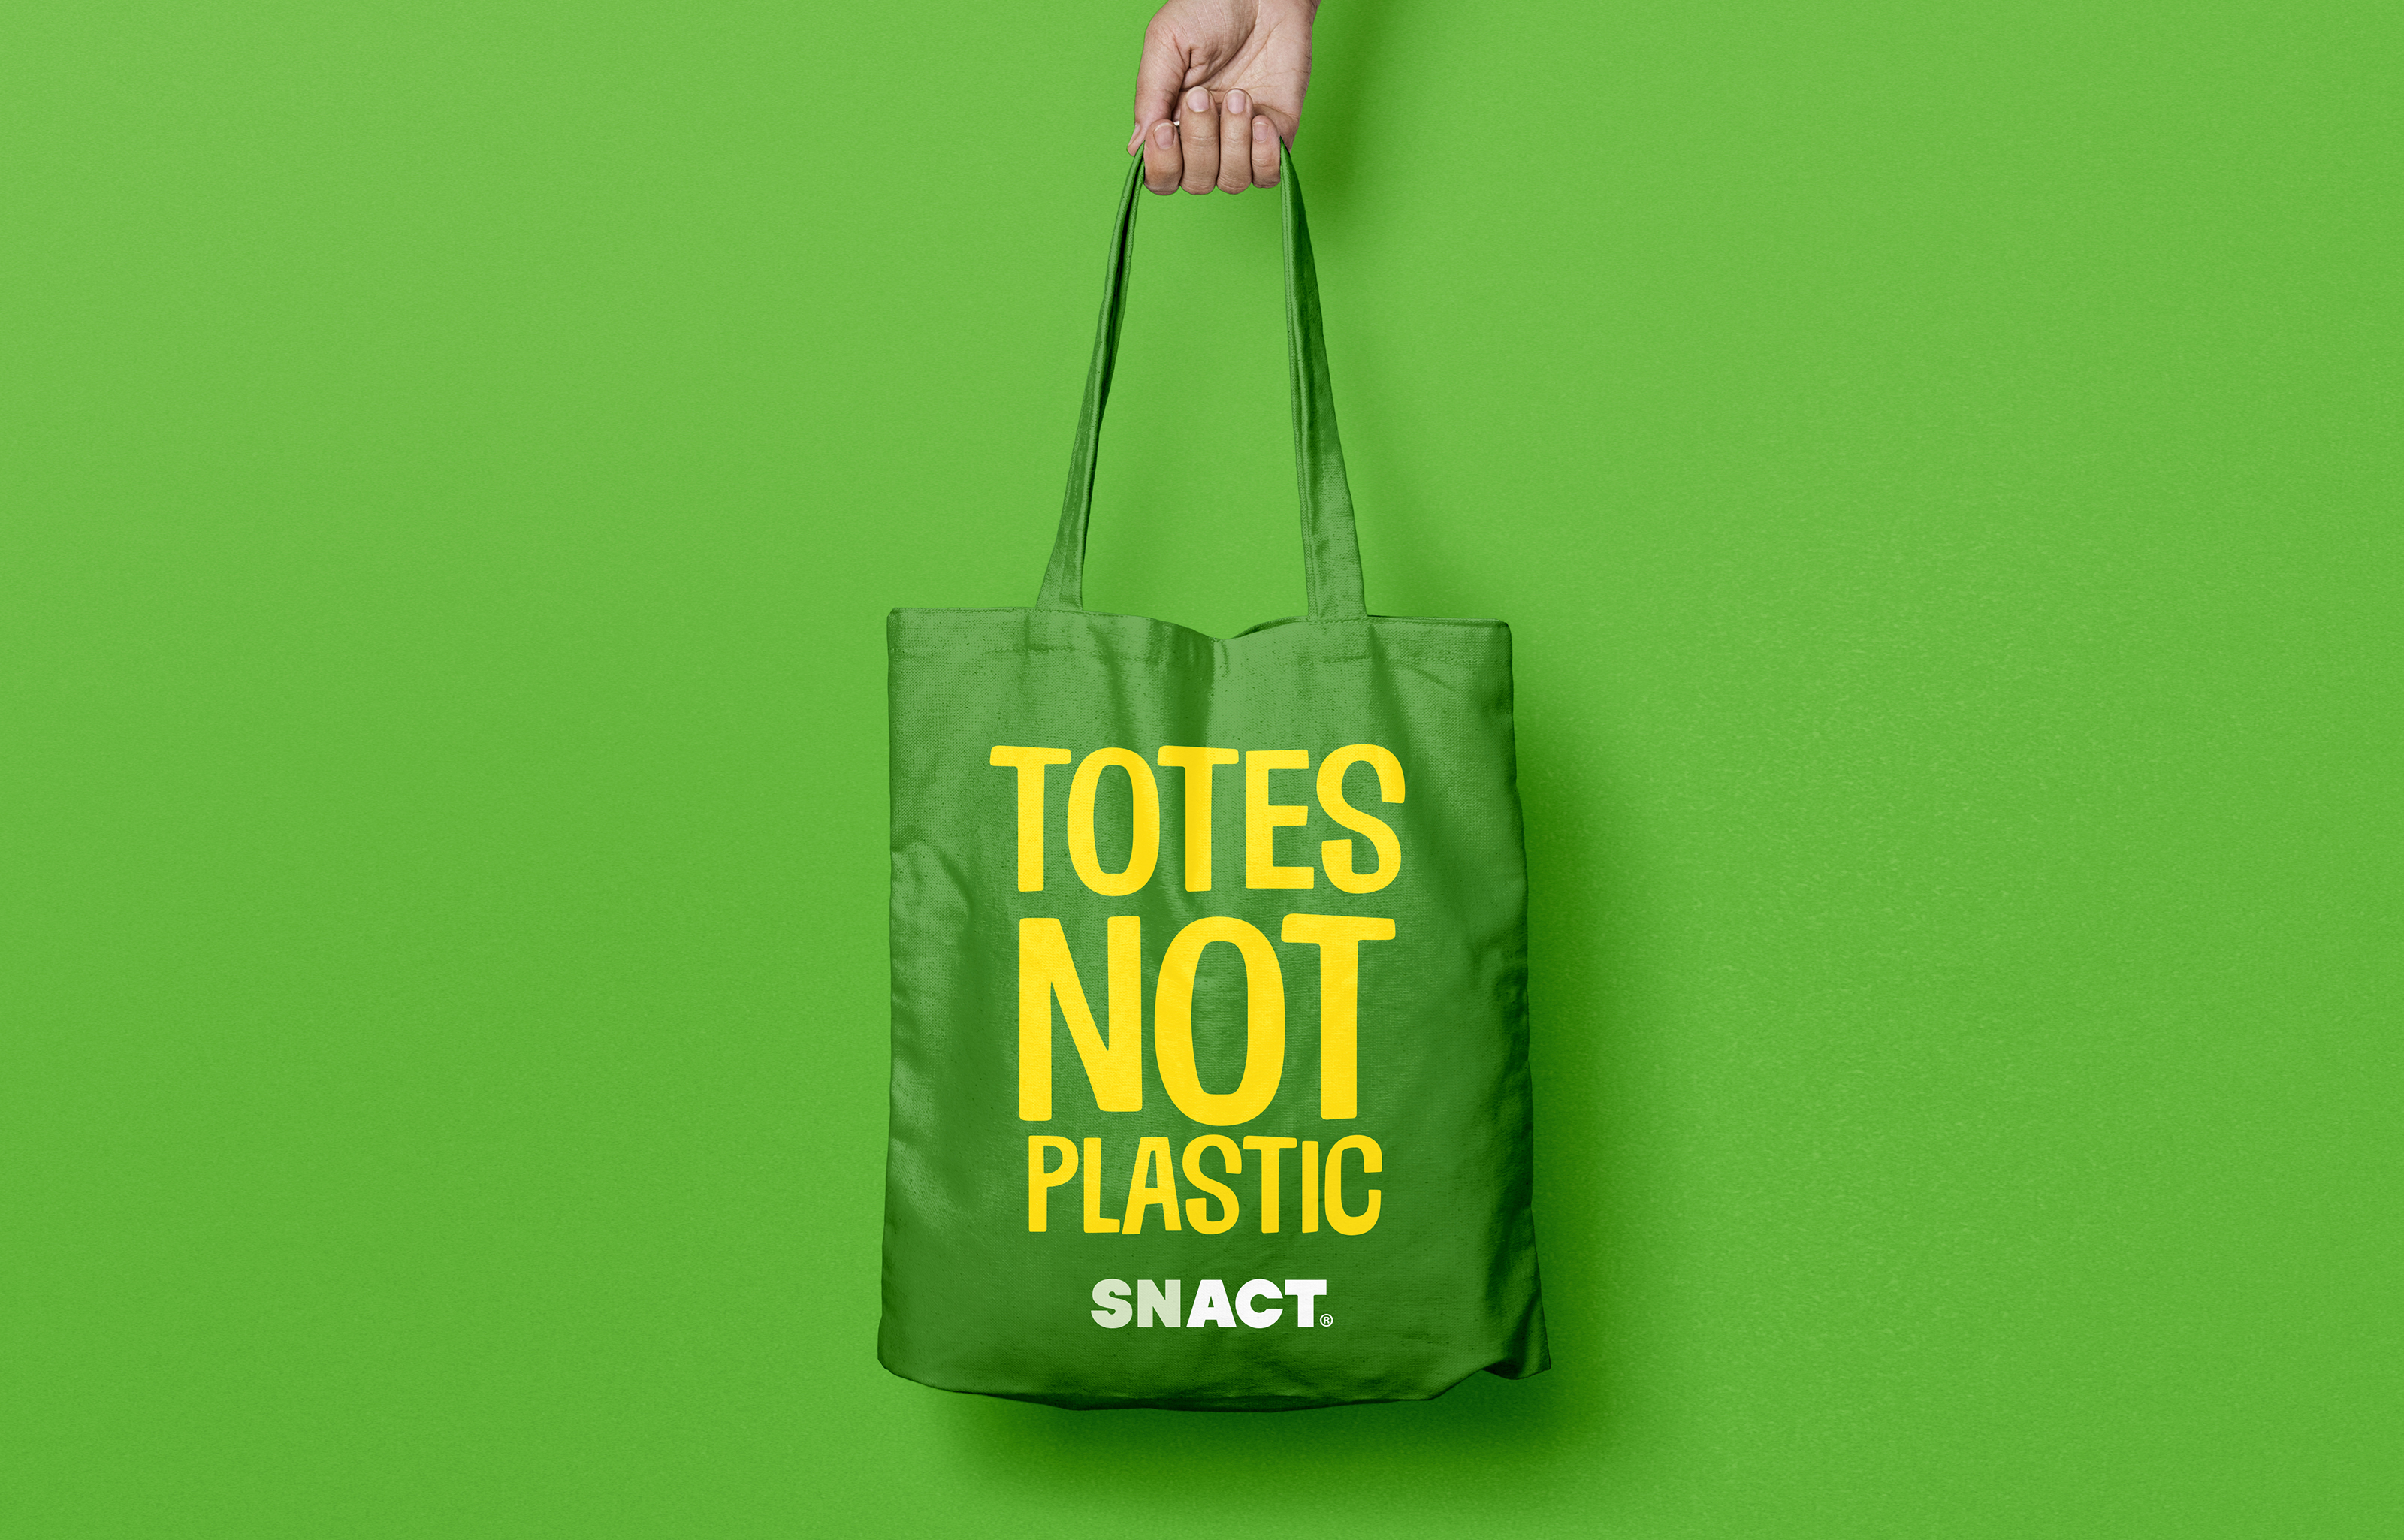 Snact Totes Not Plastic